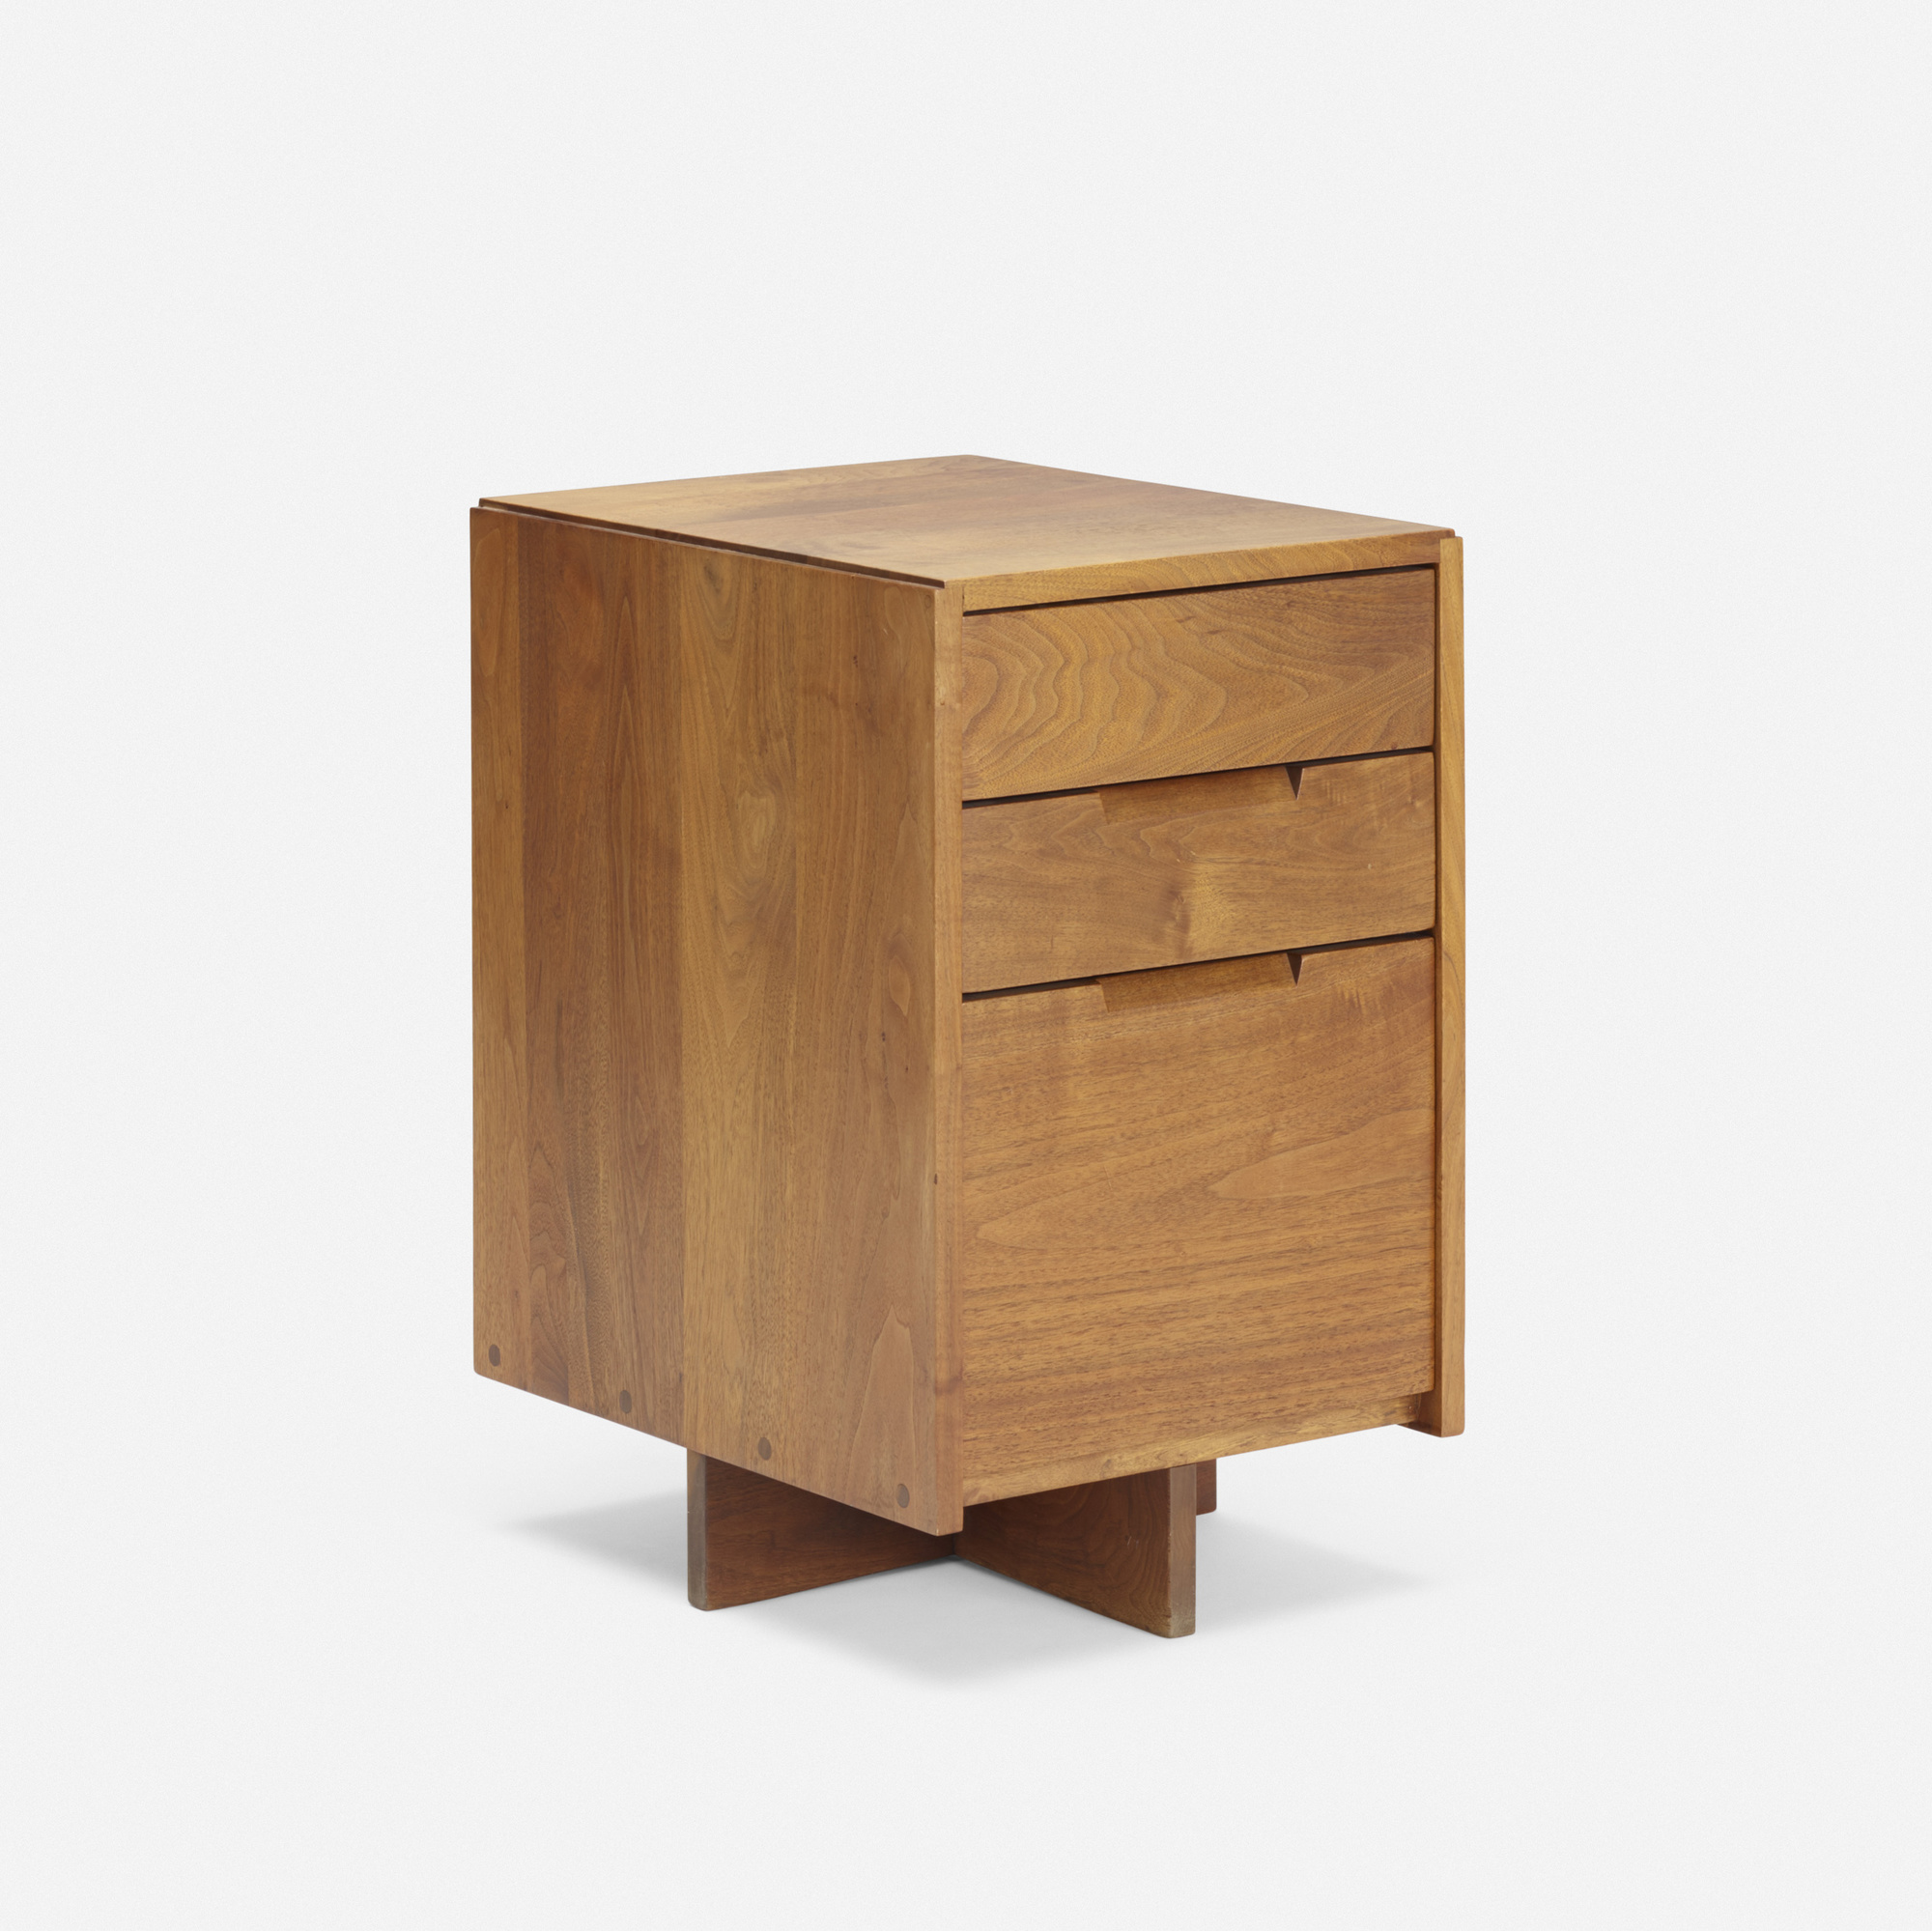 112: George Nakashima / nightstand (1 of 3)